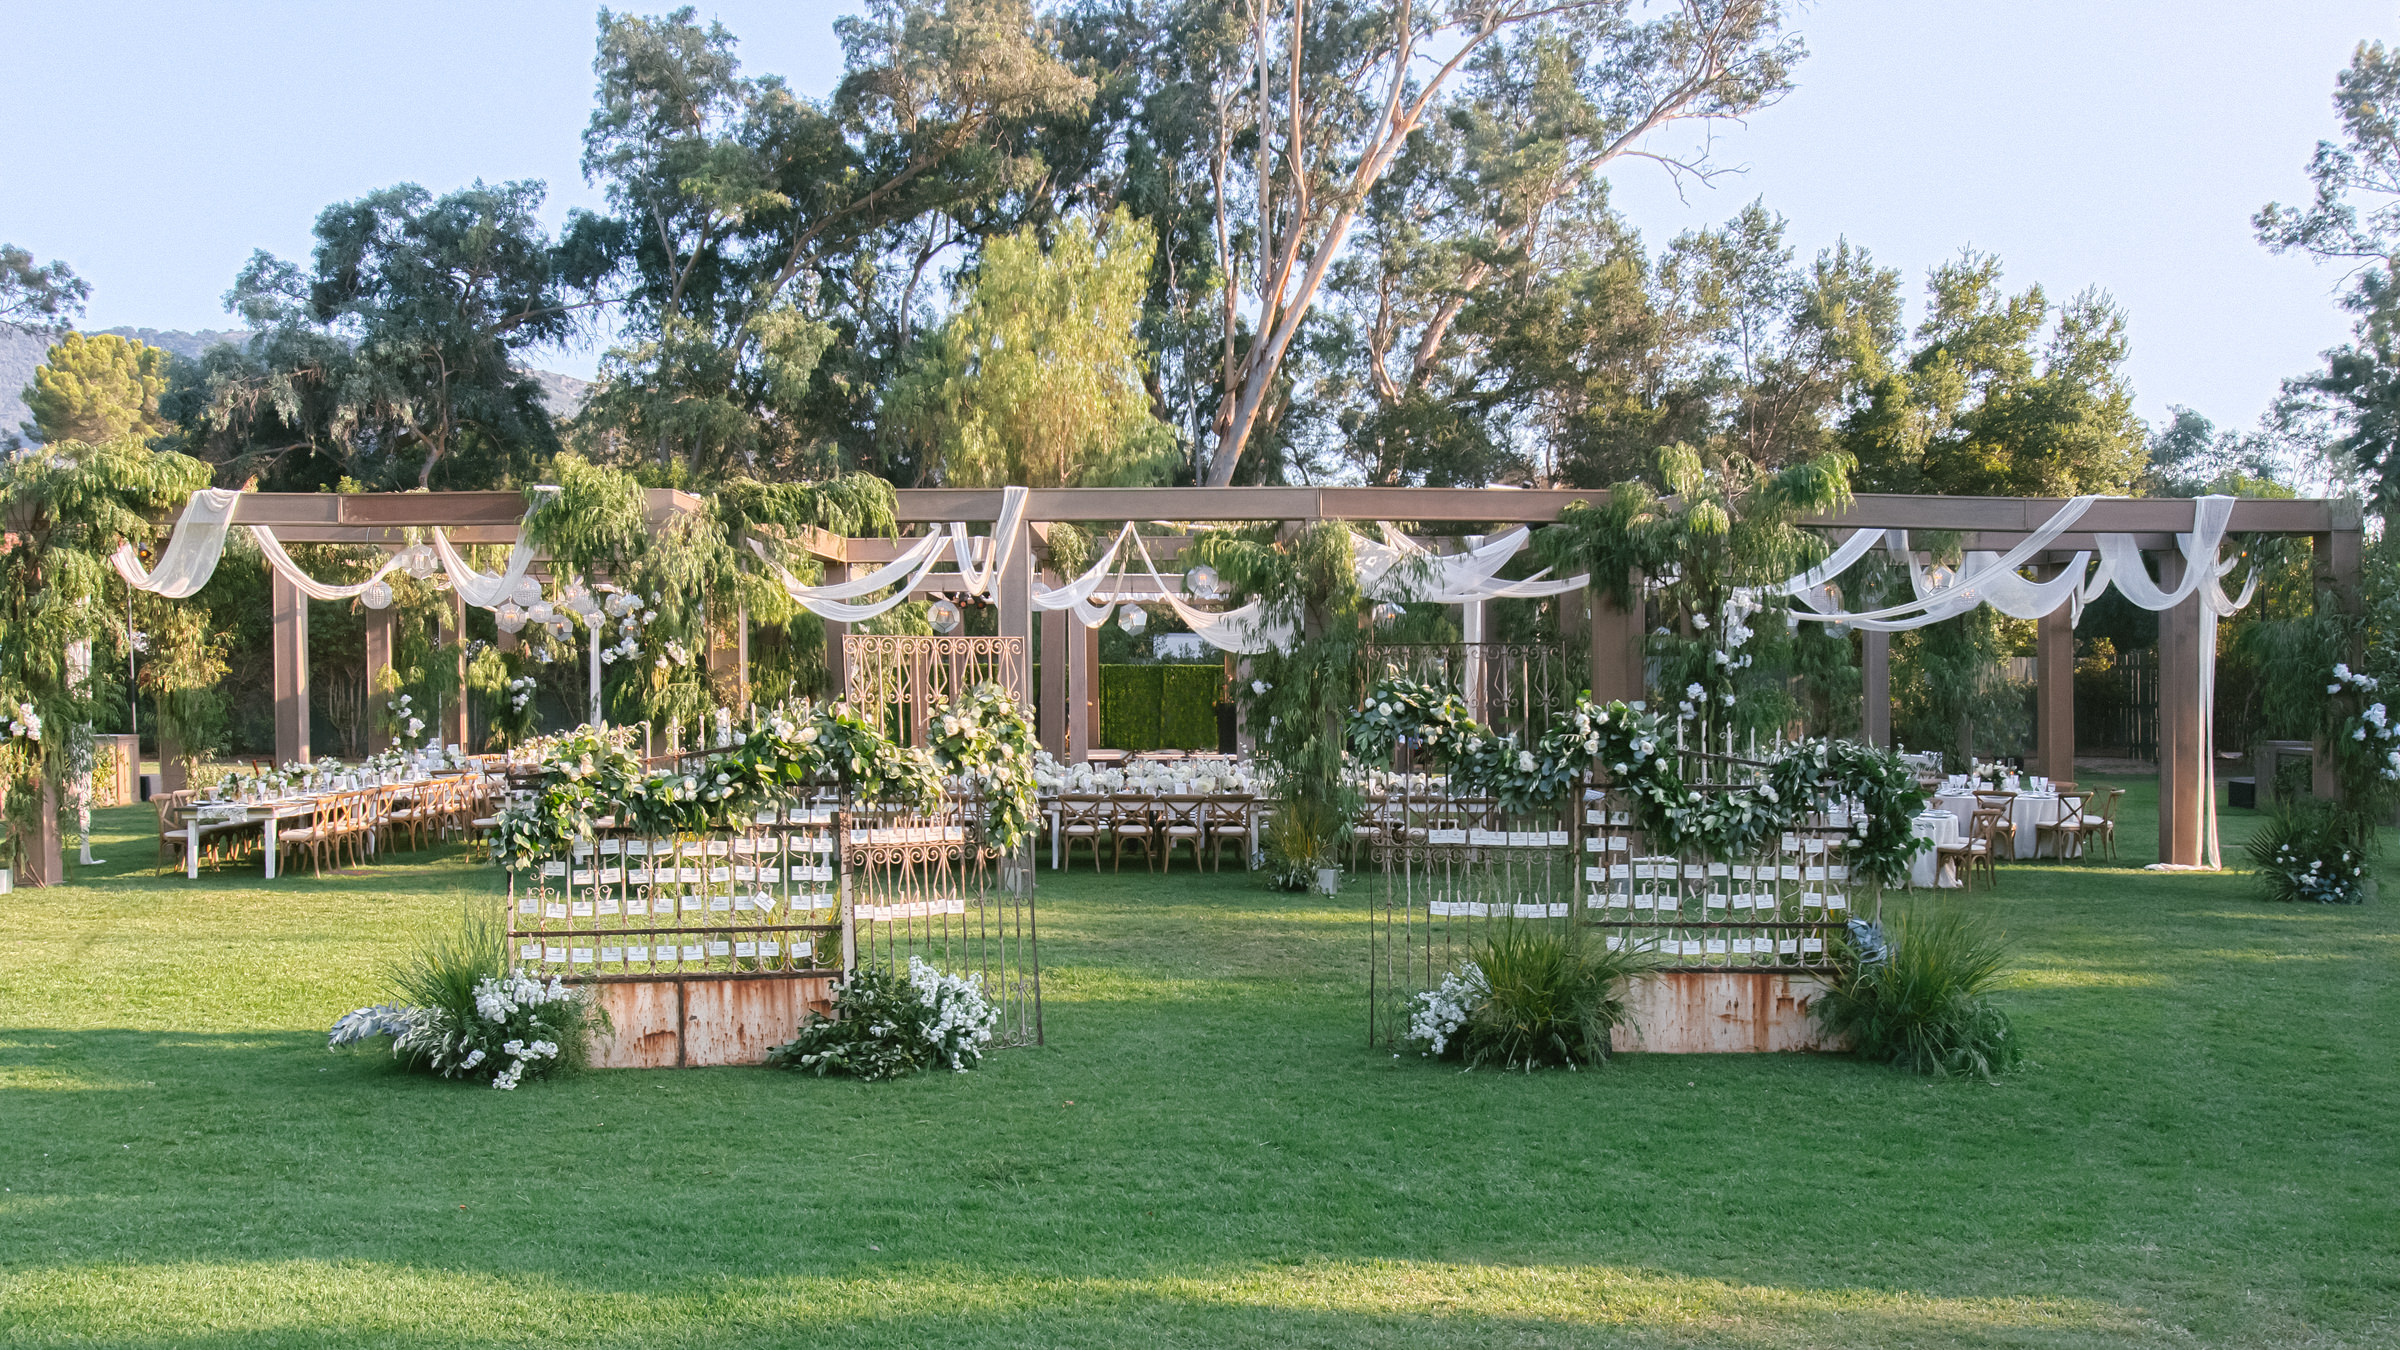 outdoor wedding reception venue with rustic arbor - photo by Amy and Stuart Photography, Los Angeles